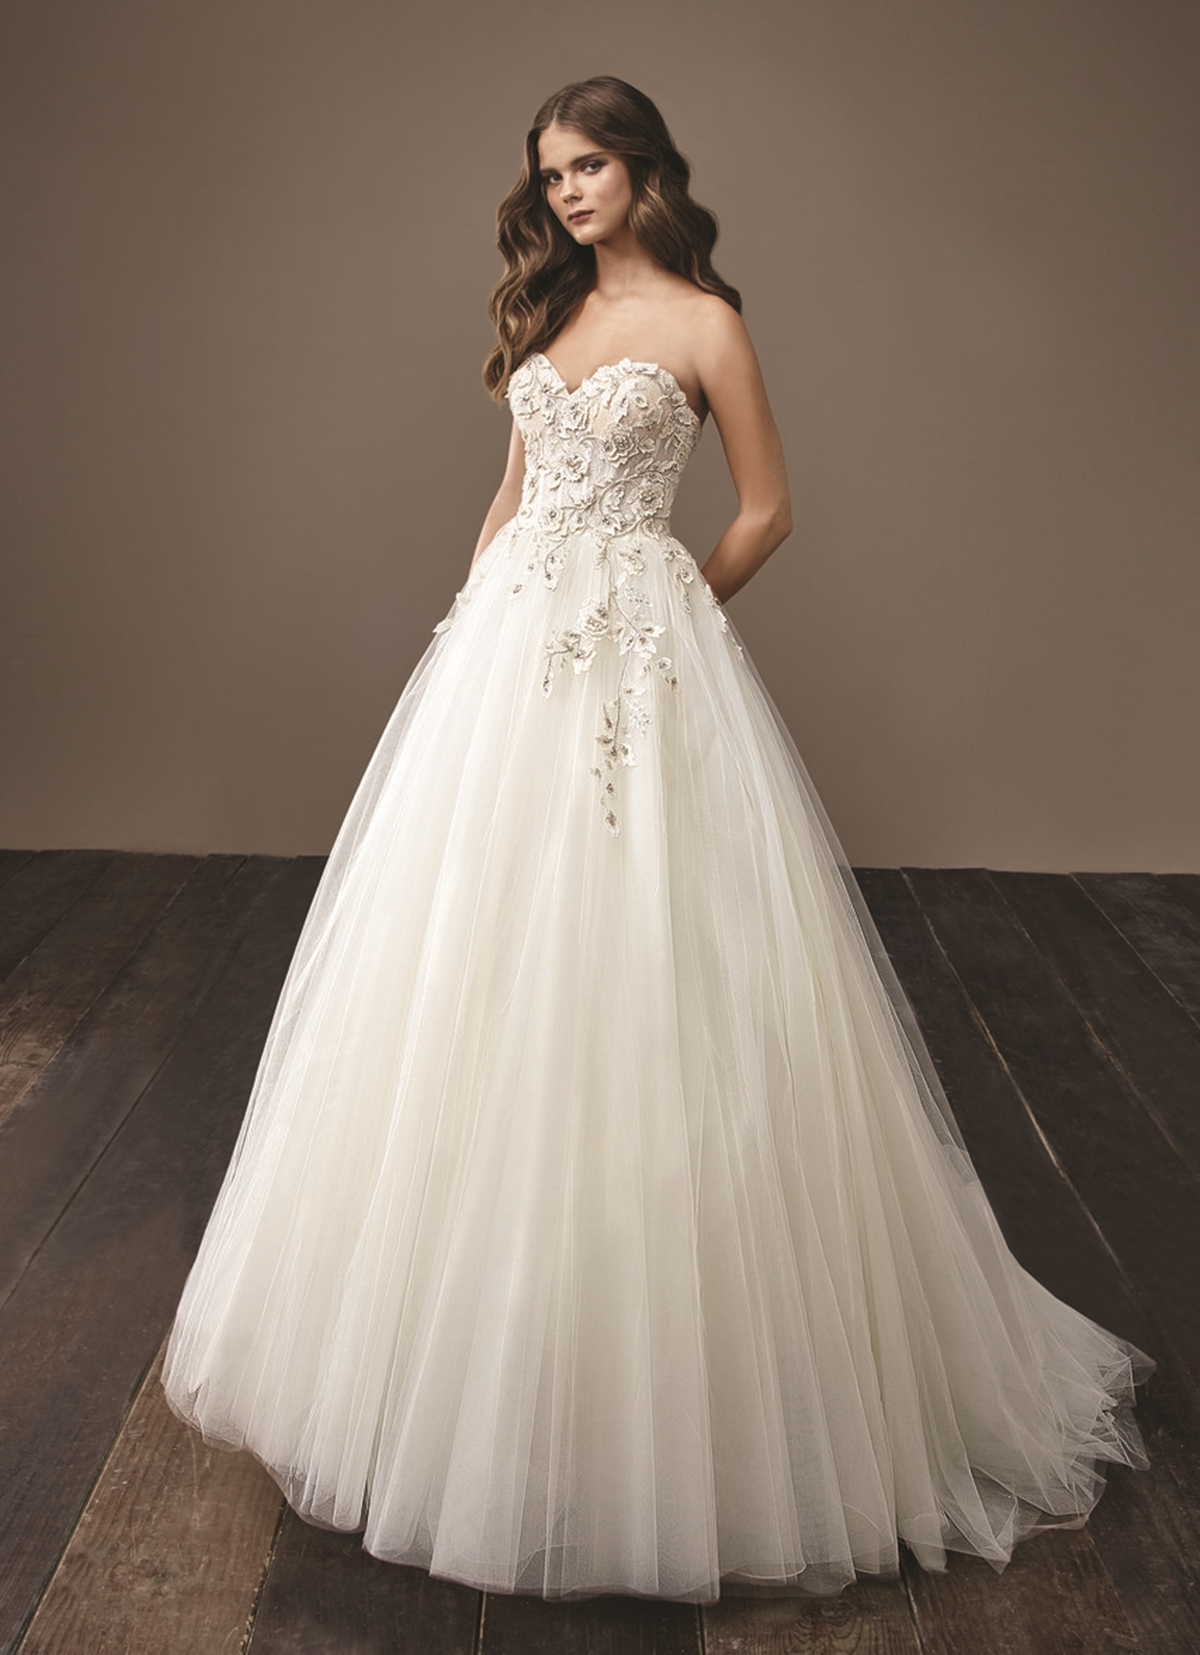 Strapless ballgown wedding dress with heart shaped neckline and embroideries Badgley Mishcka